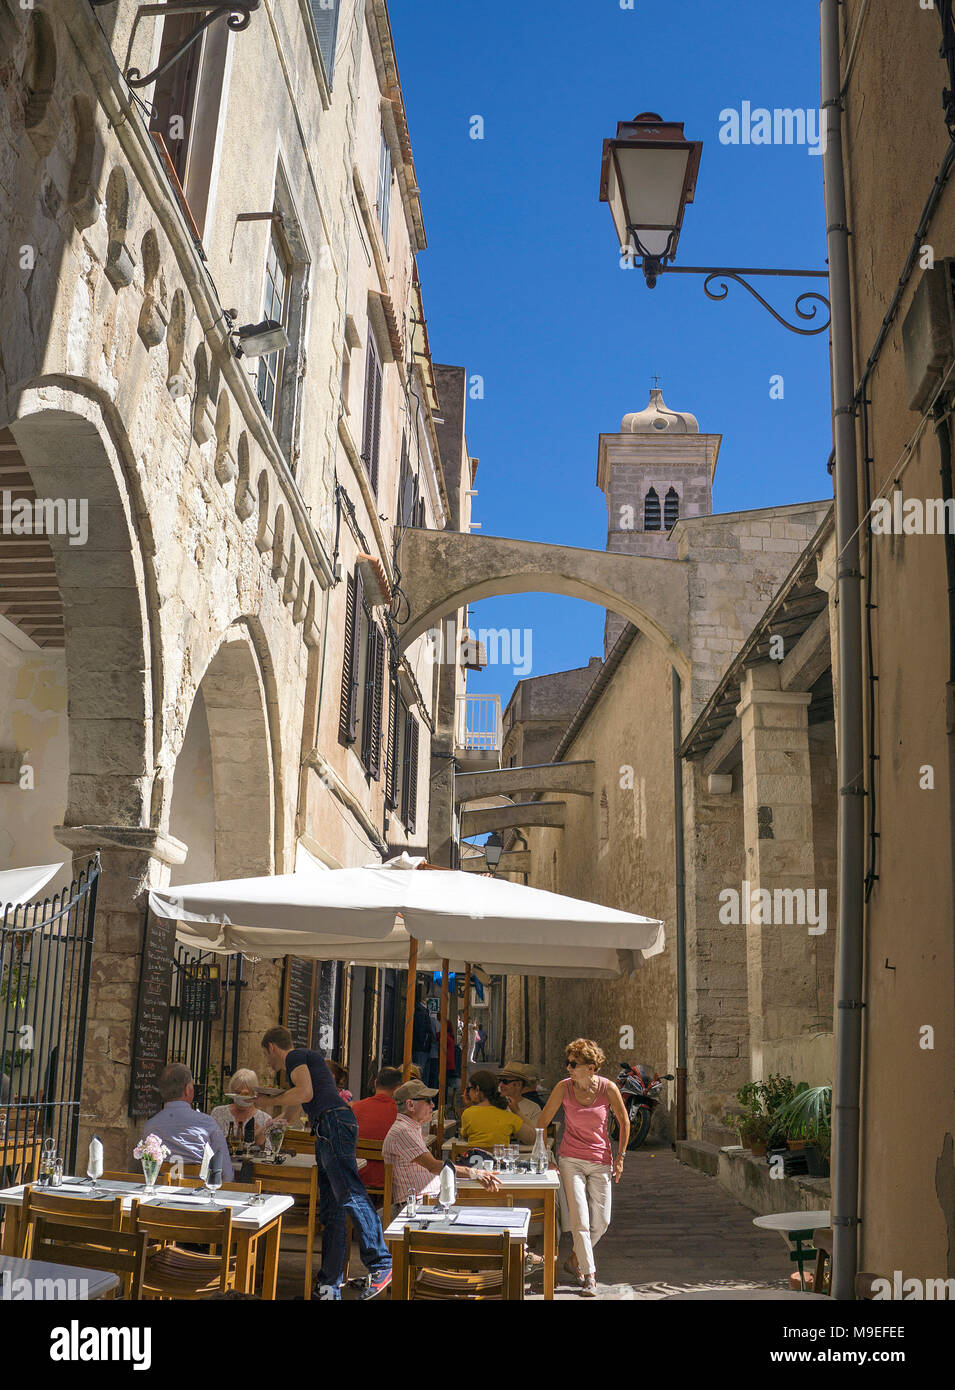 Idyllic restaurant at old town, behind the church Eglise Sainte Marie Majeure, Bonifacio, Corsica, France, Mediterranean, Europe - Stock Image